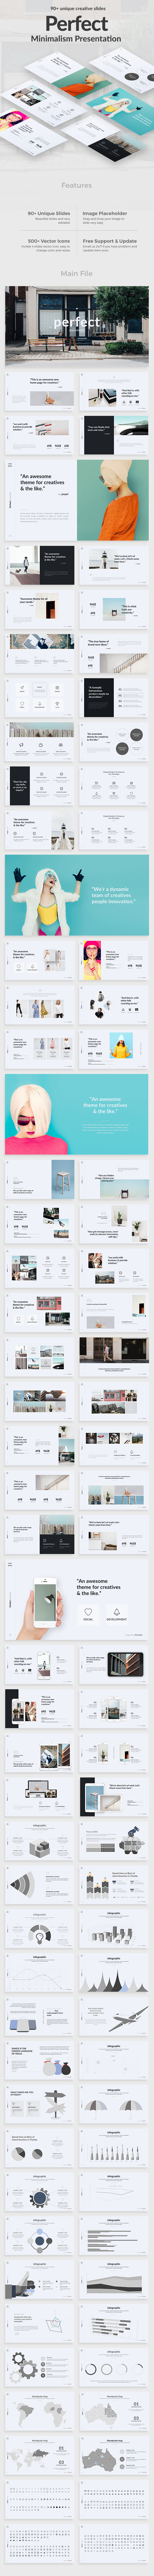 Perfect Project Minimal Powerpoint Template - Creative PowerPoint Templates